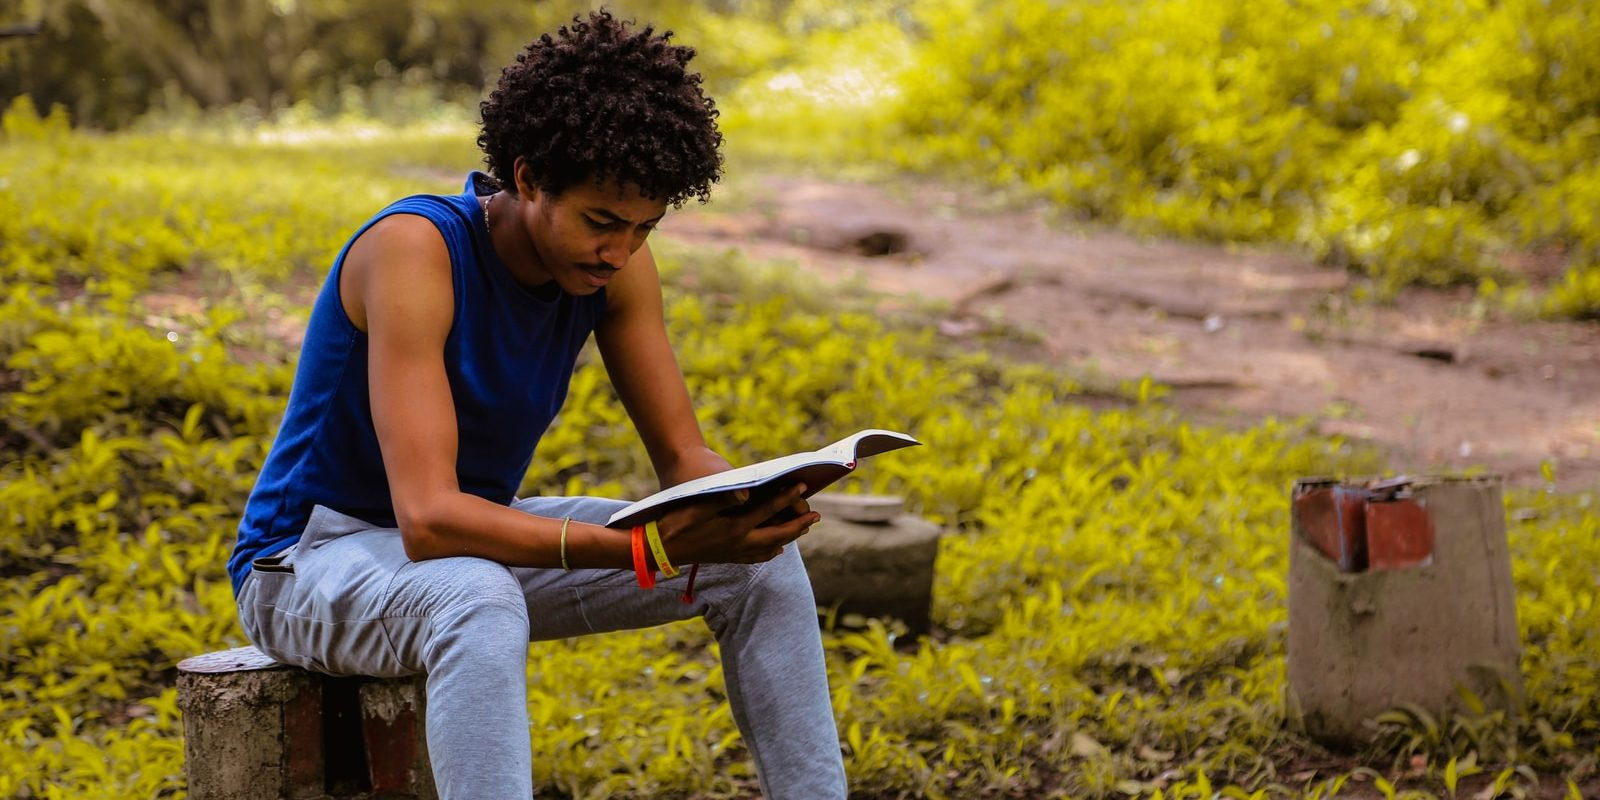 man wearing blue shirt sitting on the bench reading book